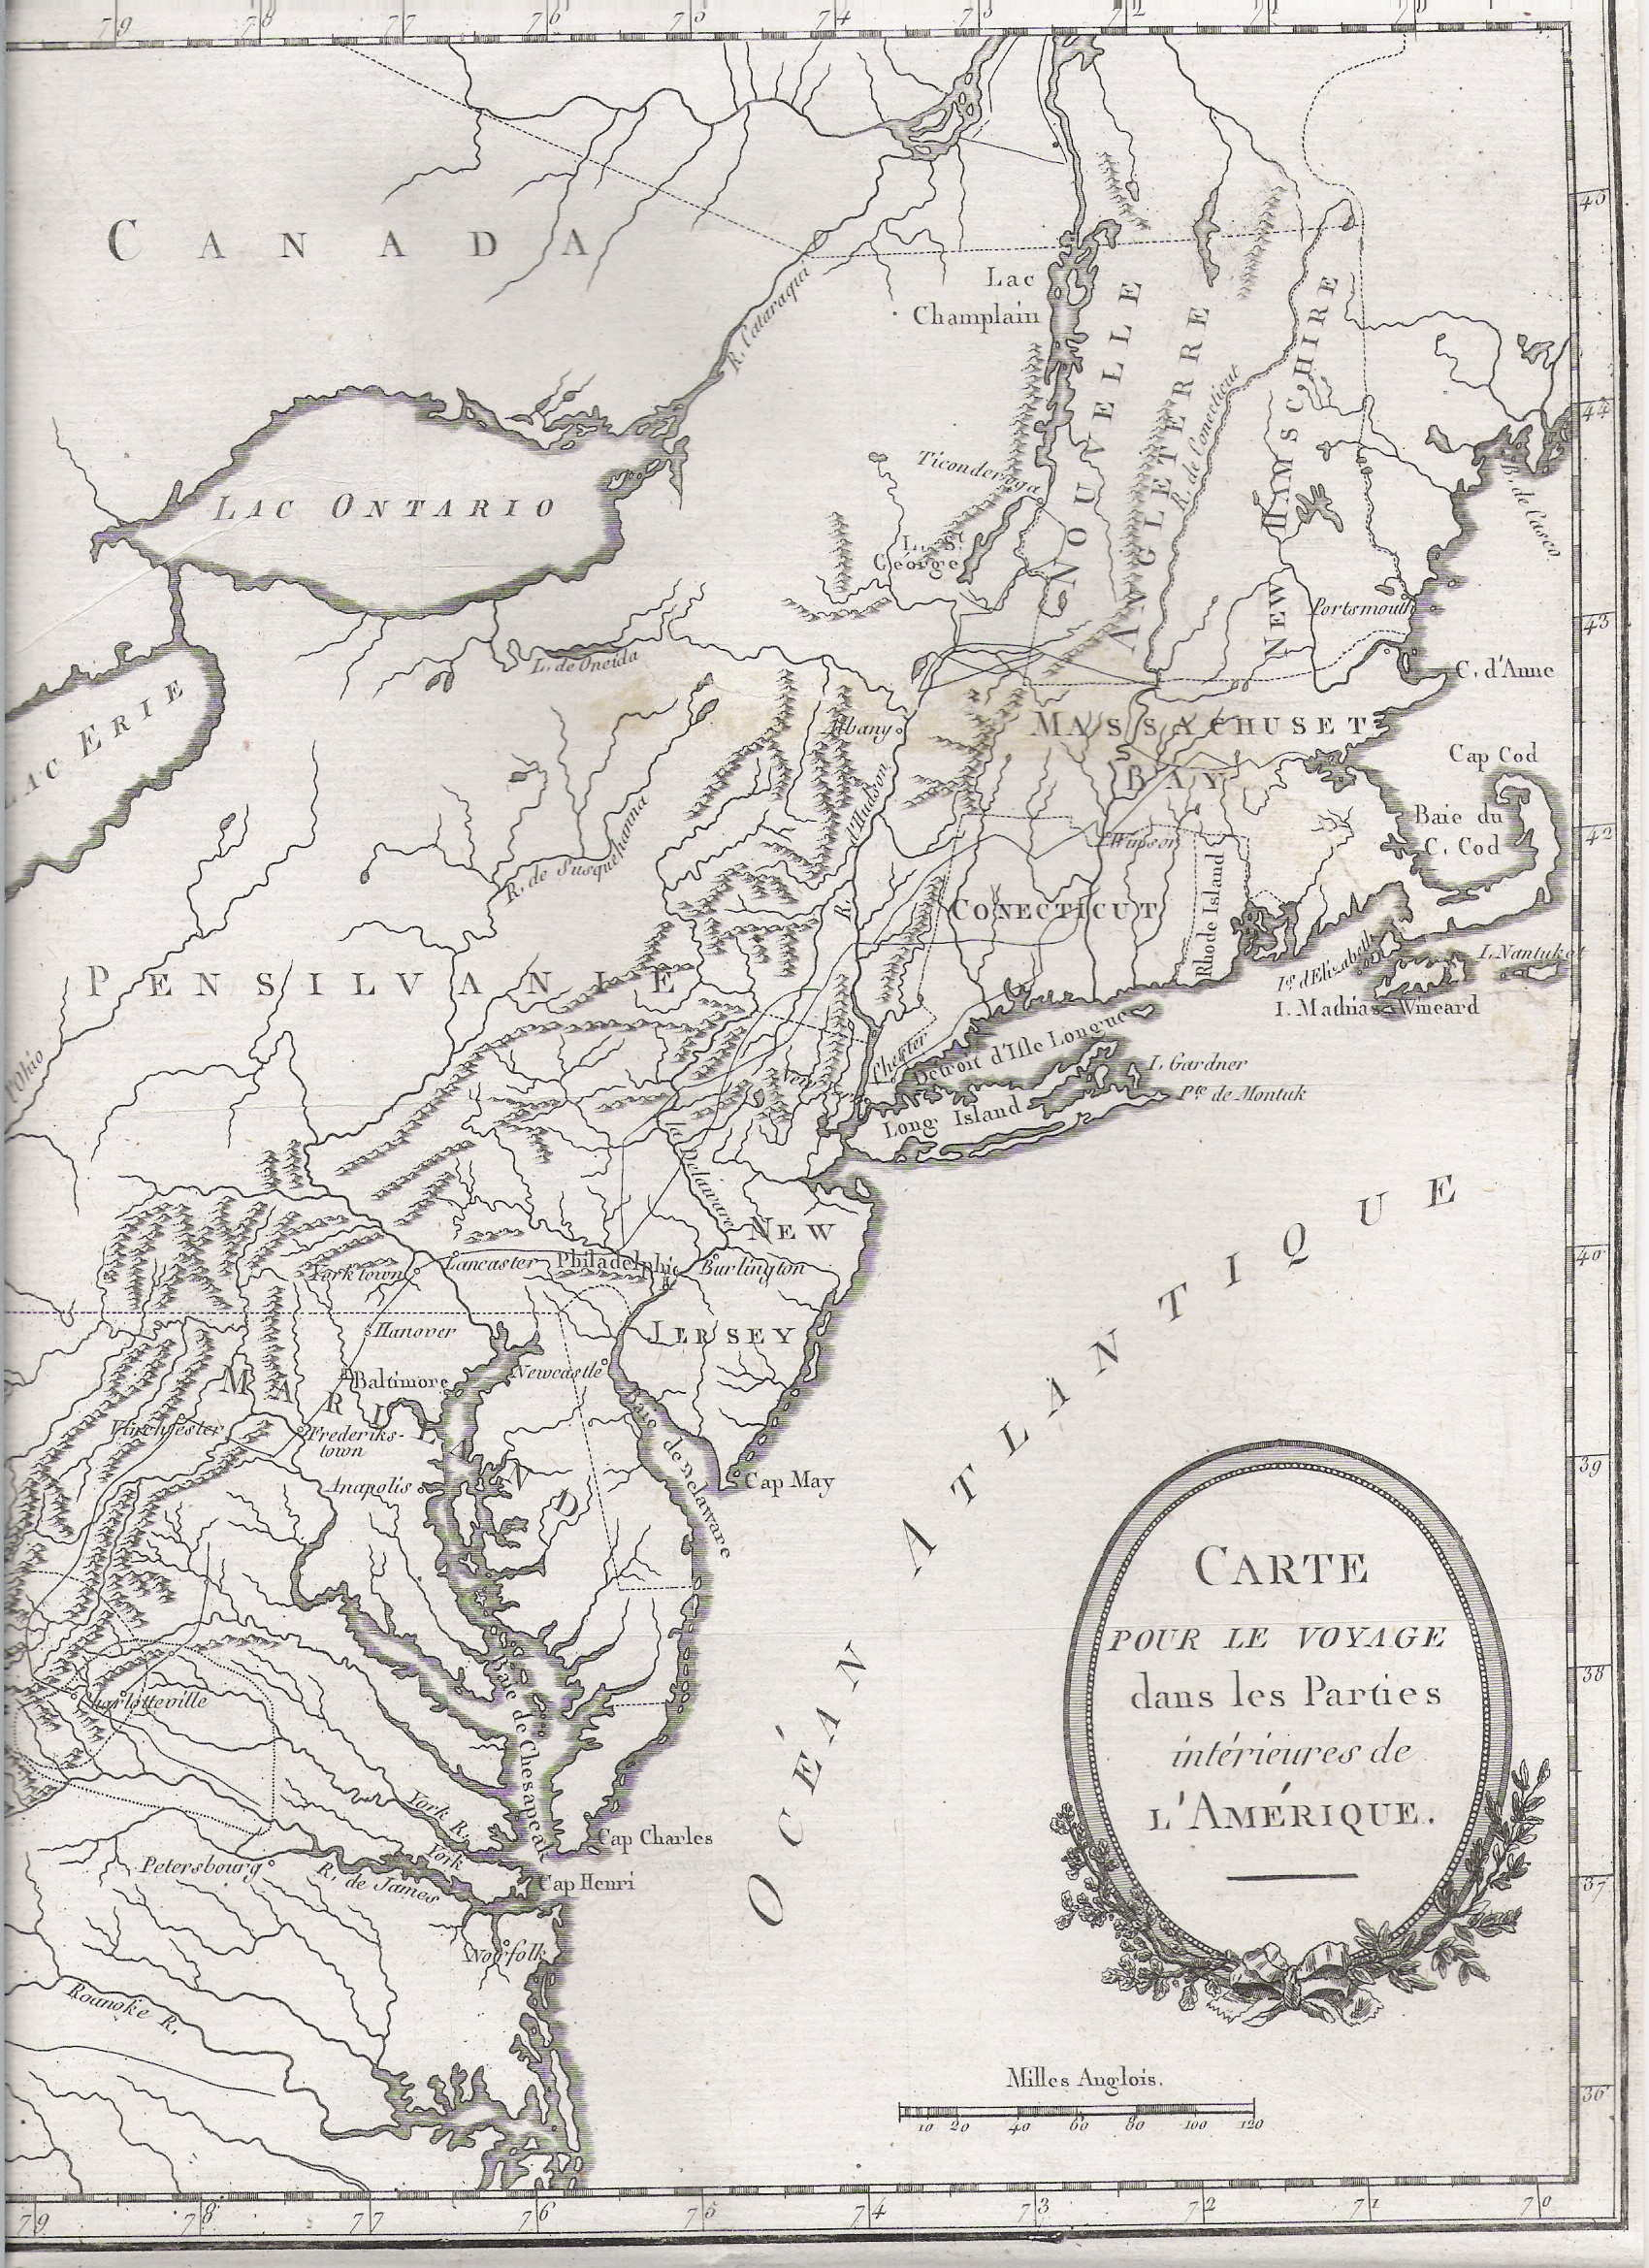 This map is from Voyages dans les parties interieurs de l'Amerique by  Thomas Anburey, Paris 1790, the French edition ...